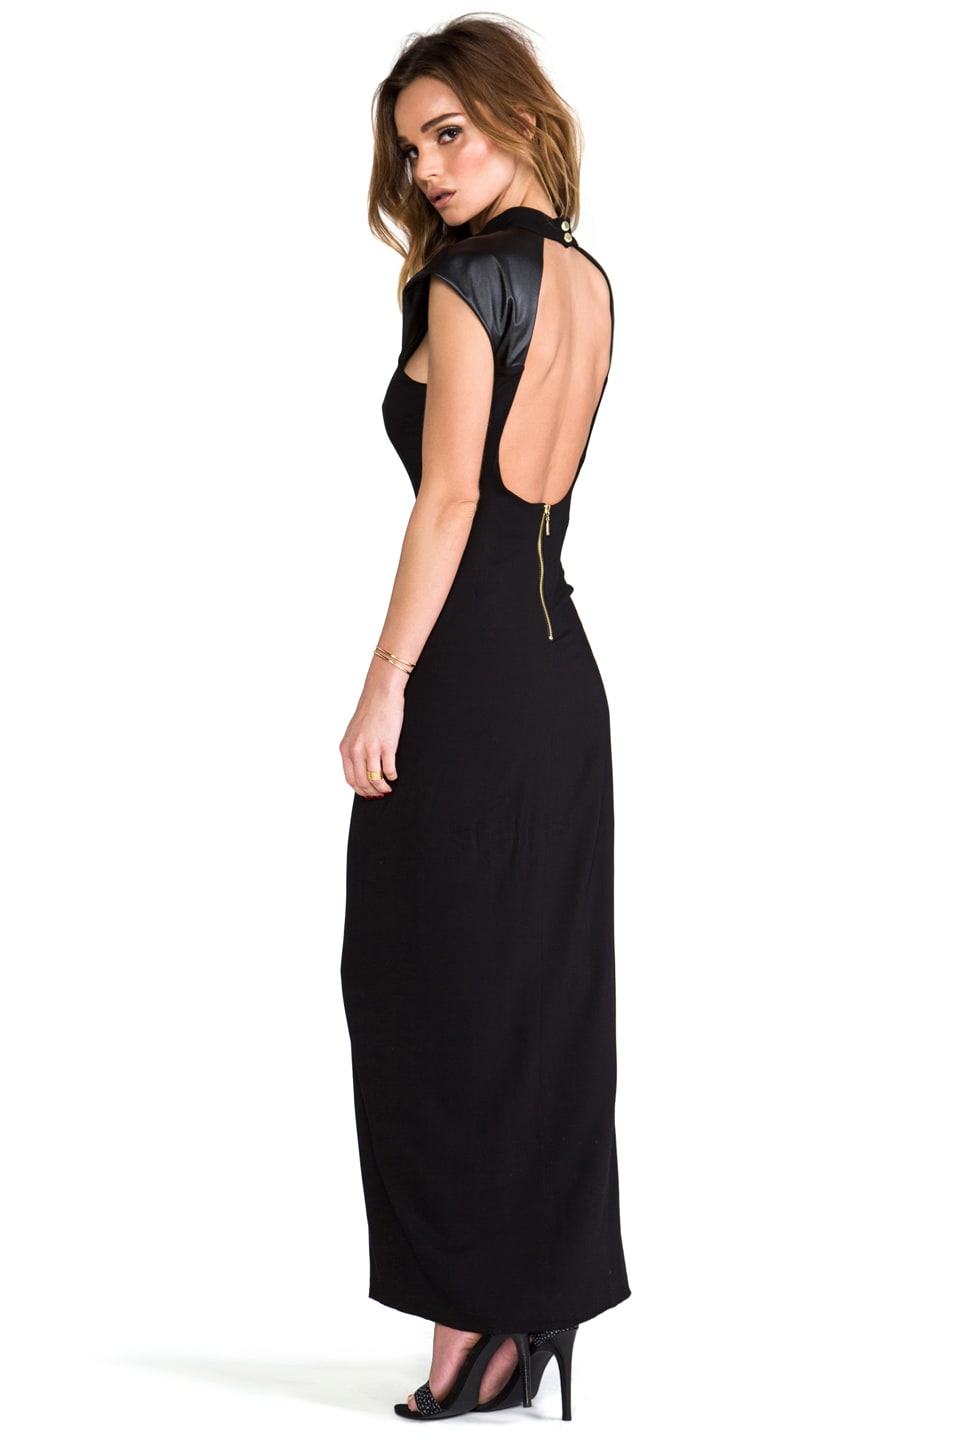 Naven Galactic Gown in Black/Black